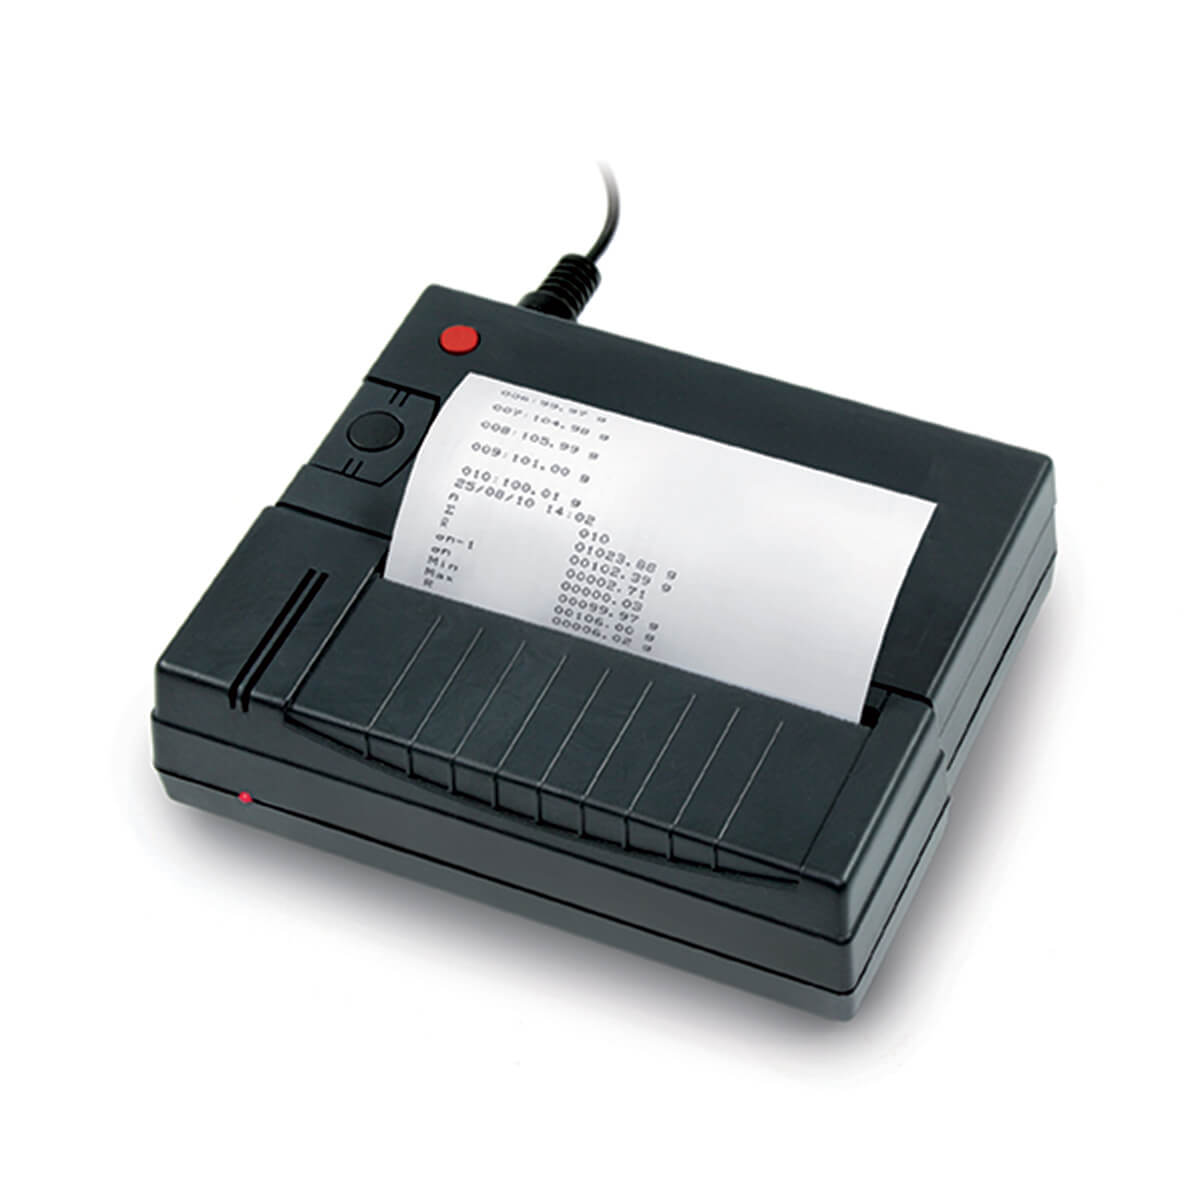 STAT, serial printer with Statistics